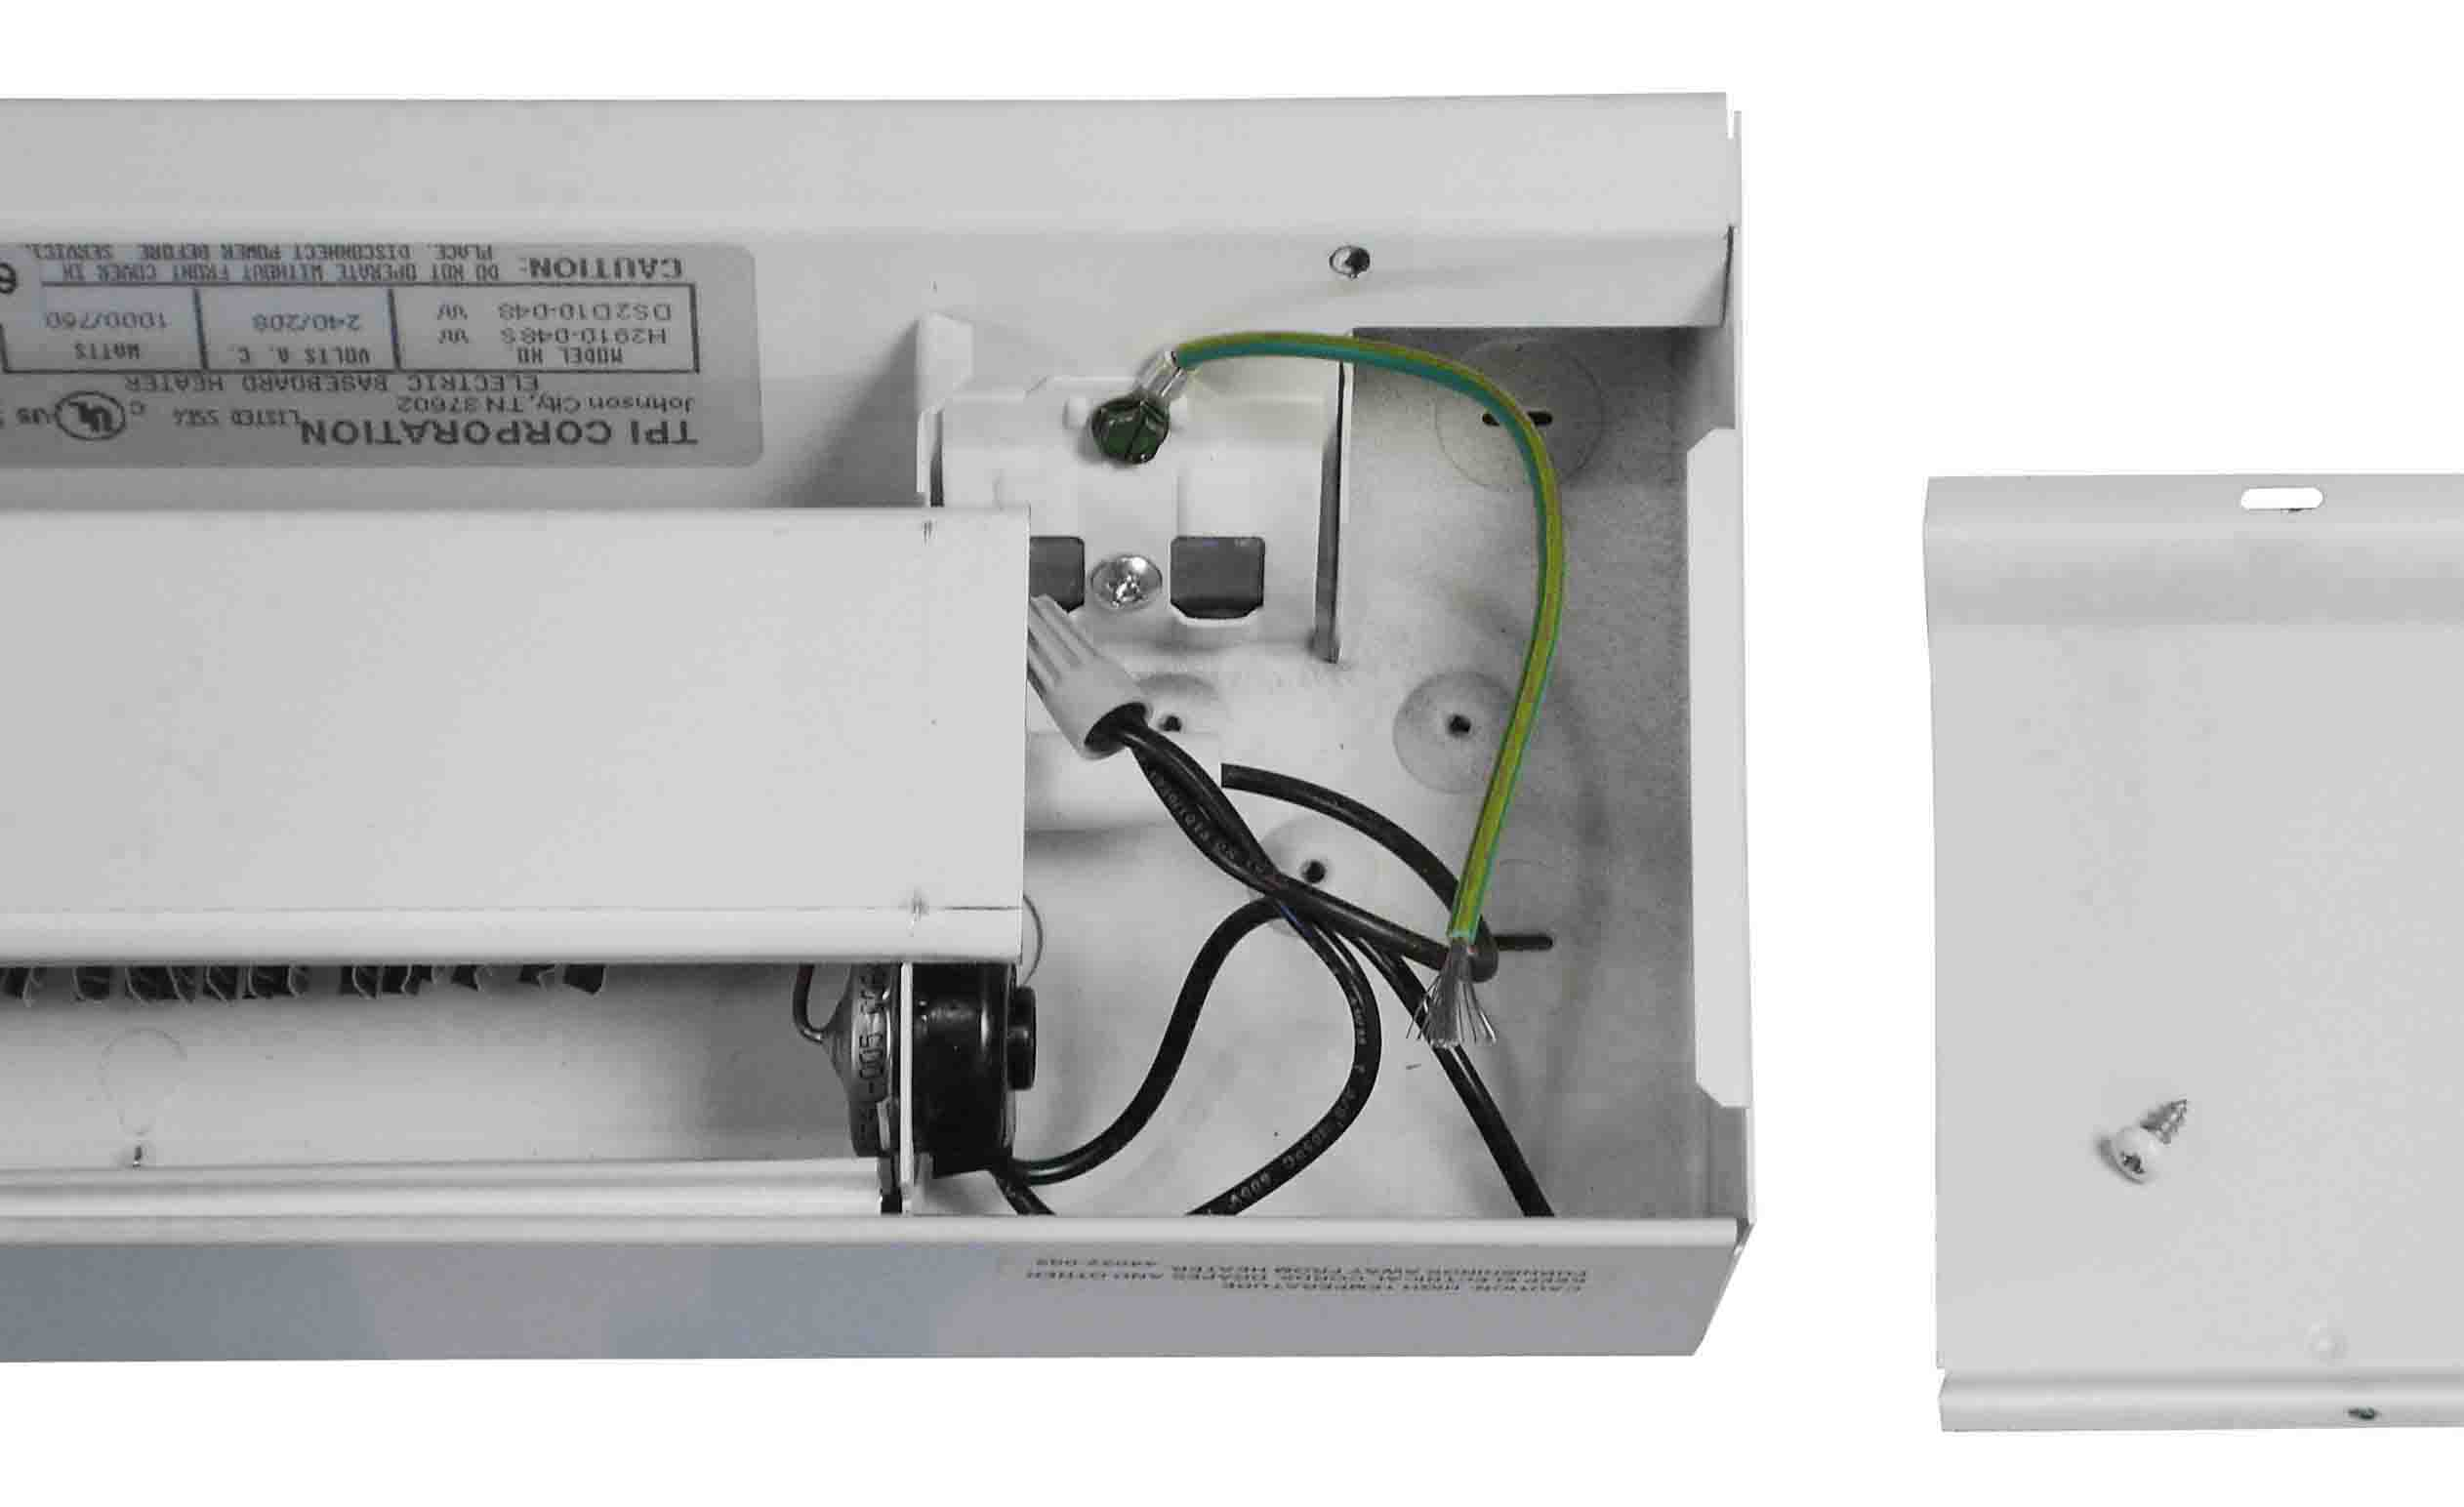 Thermostat Wiring For Electric Baseboard Heater